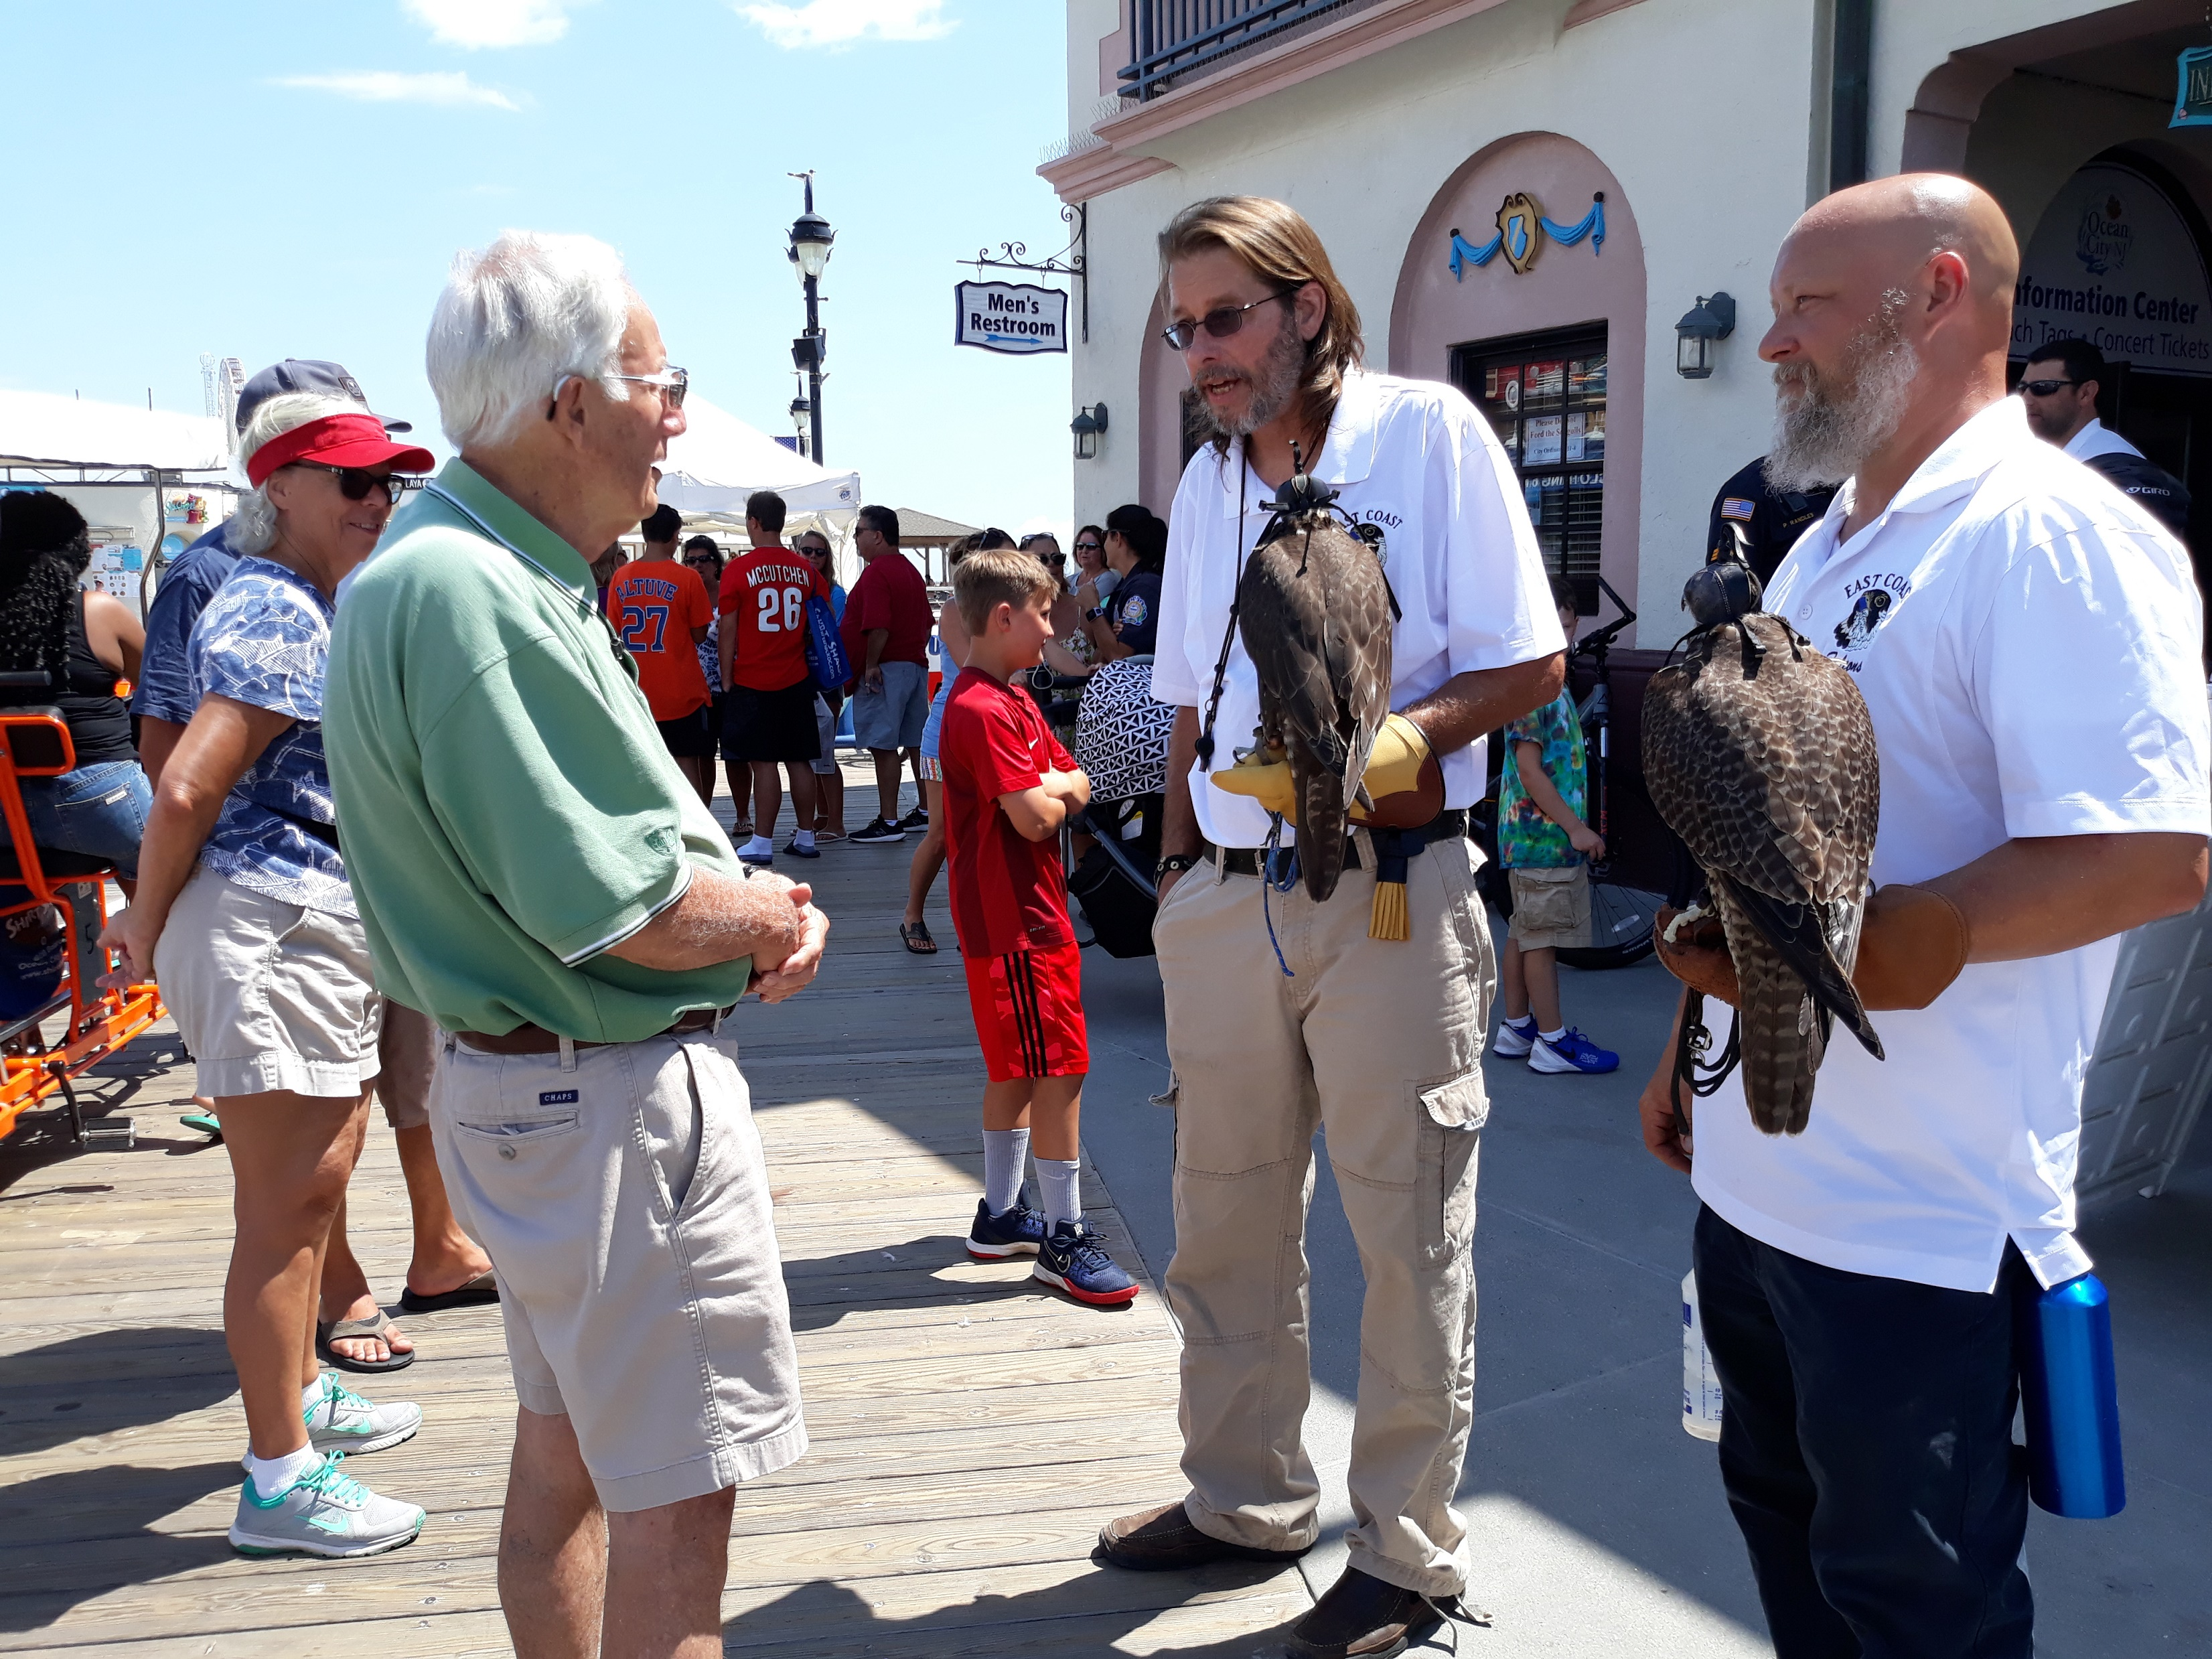 Falcons Arrive to Chase Away Pesky Seagulls | OCNJ Daily